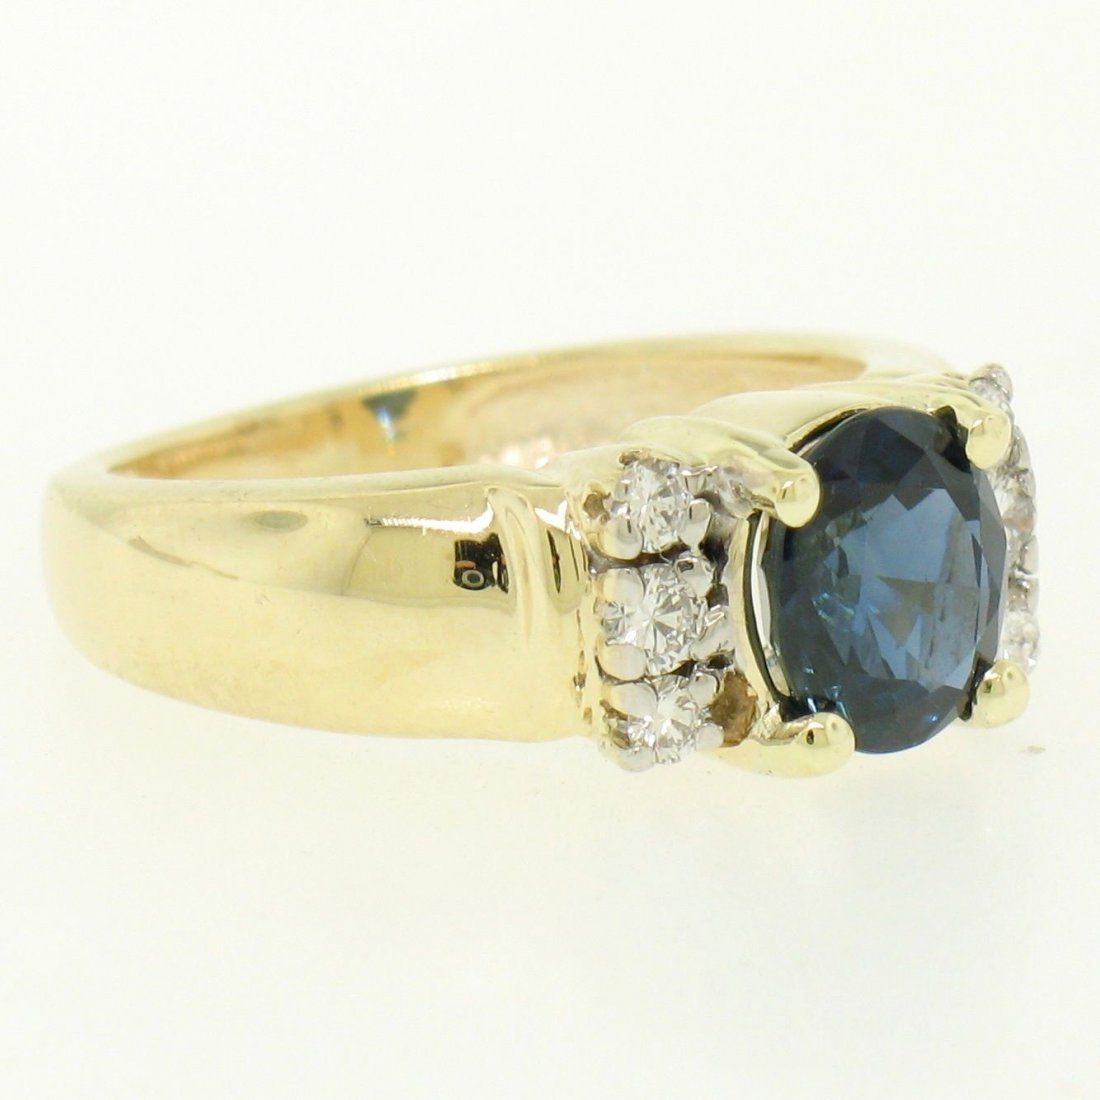 Dankner 14k Yellow Gold 1.21ctw Oval Sapphire Solitaire